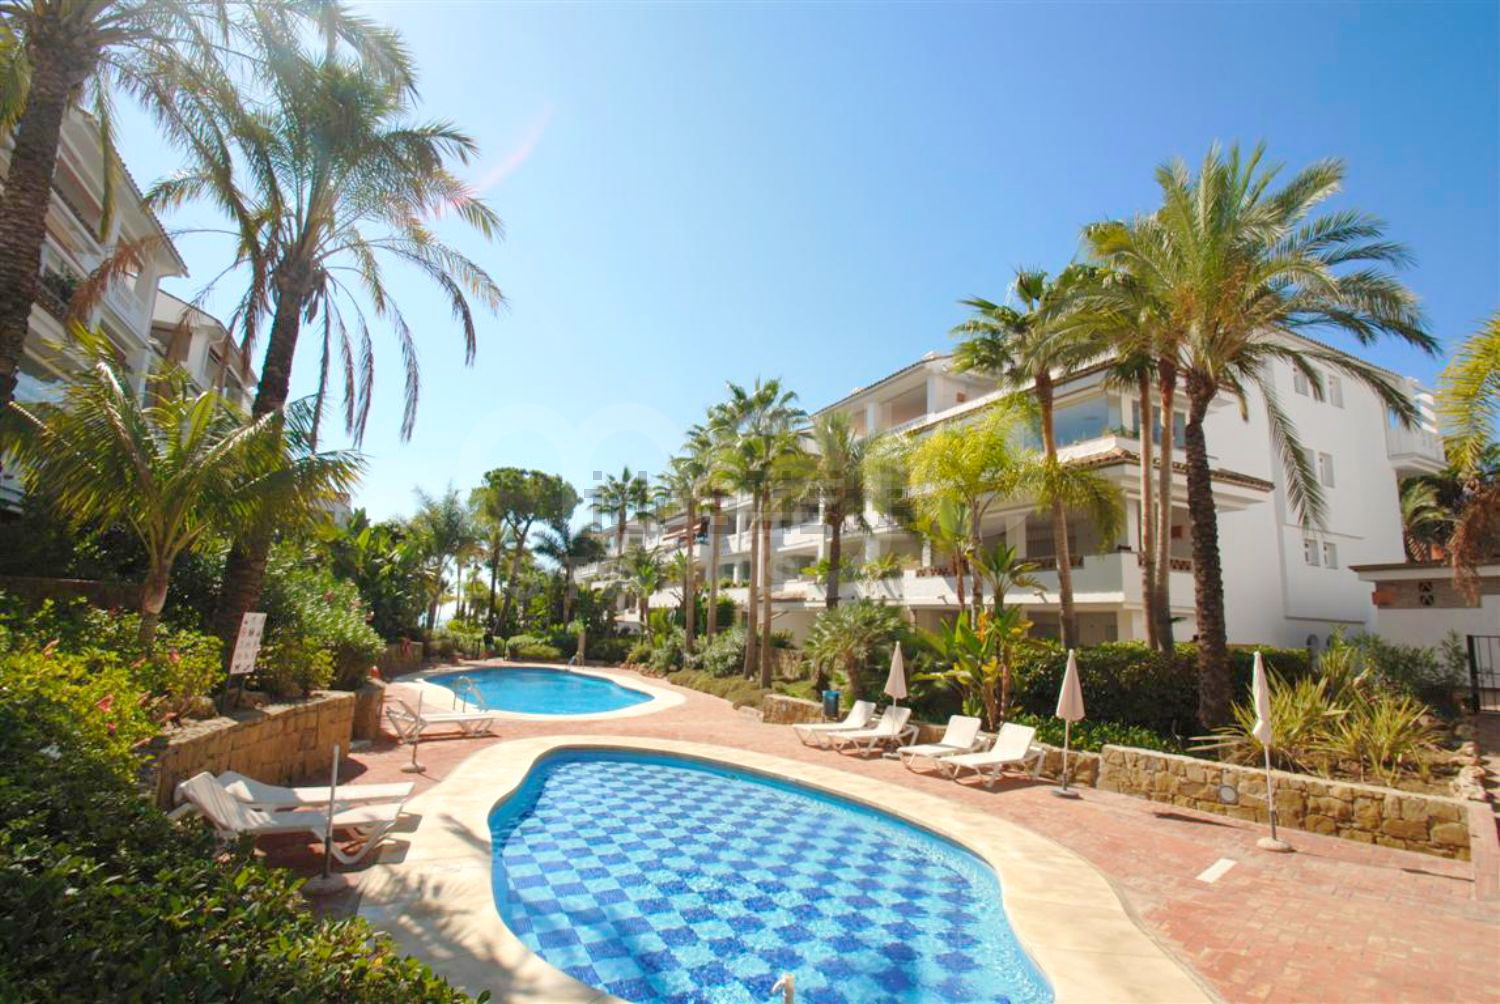 Apartment for sale in Beach Side Golden Mile, Marbella Golden Mile